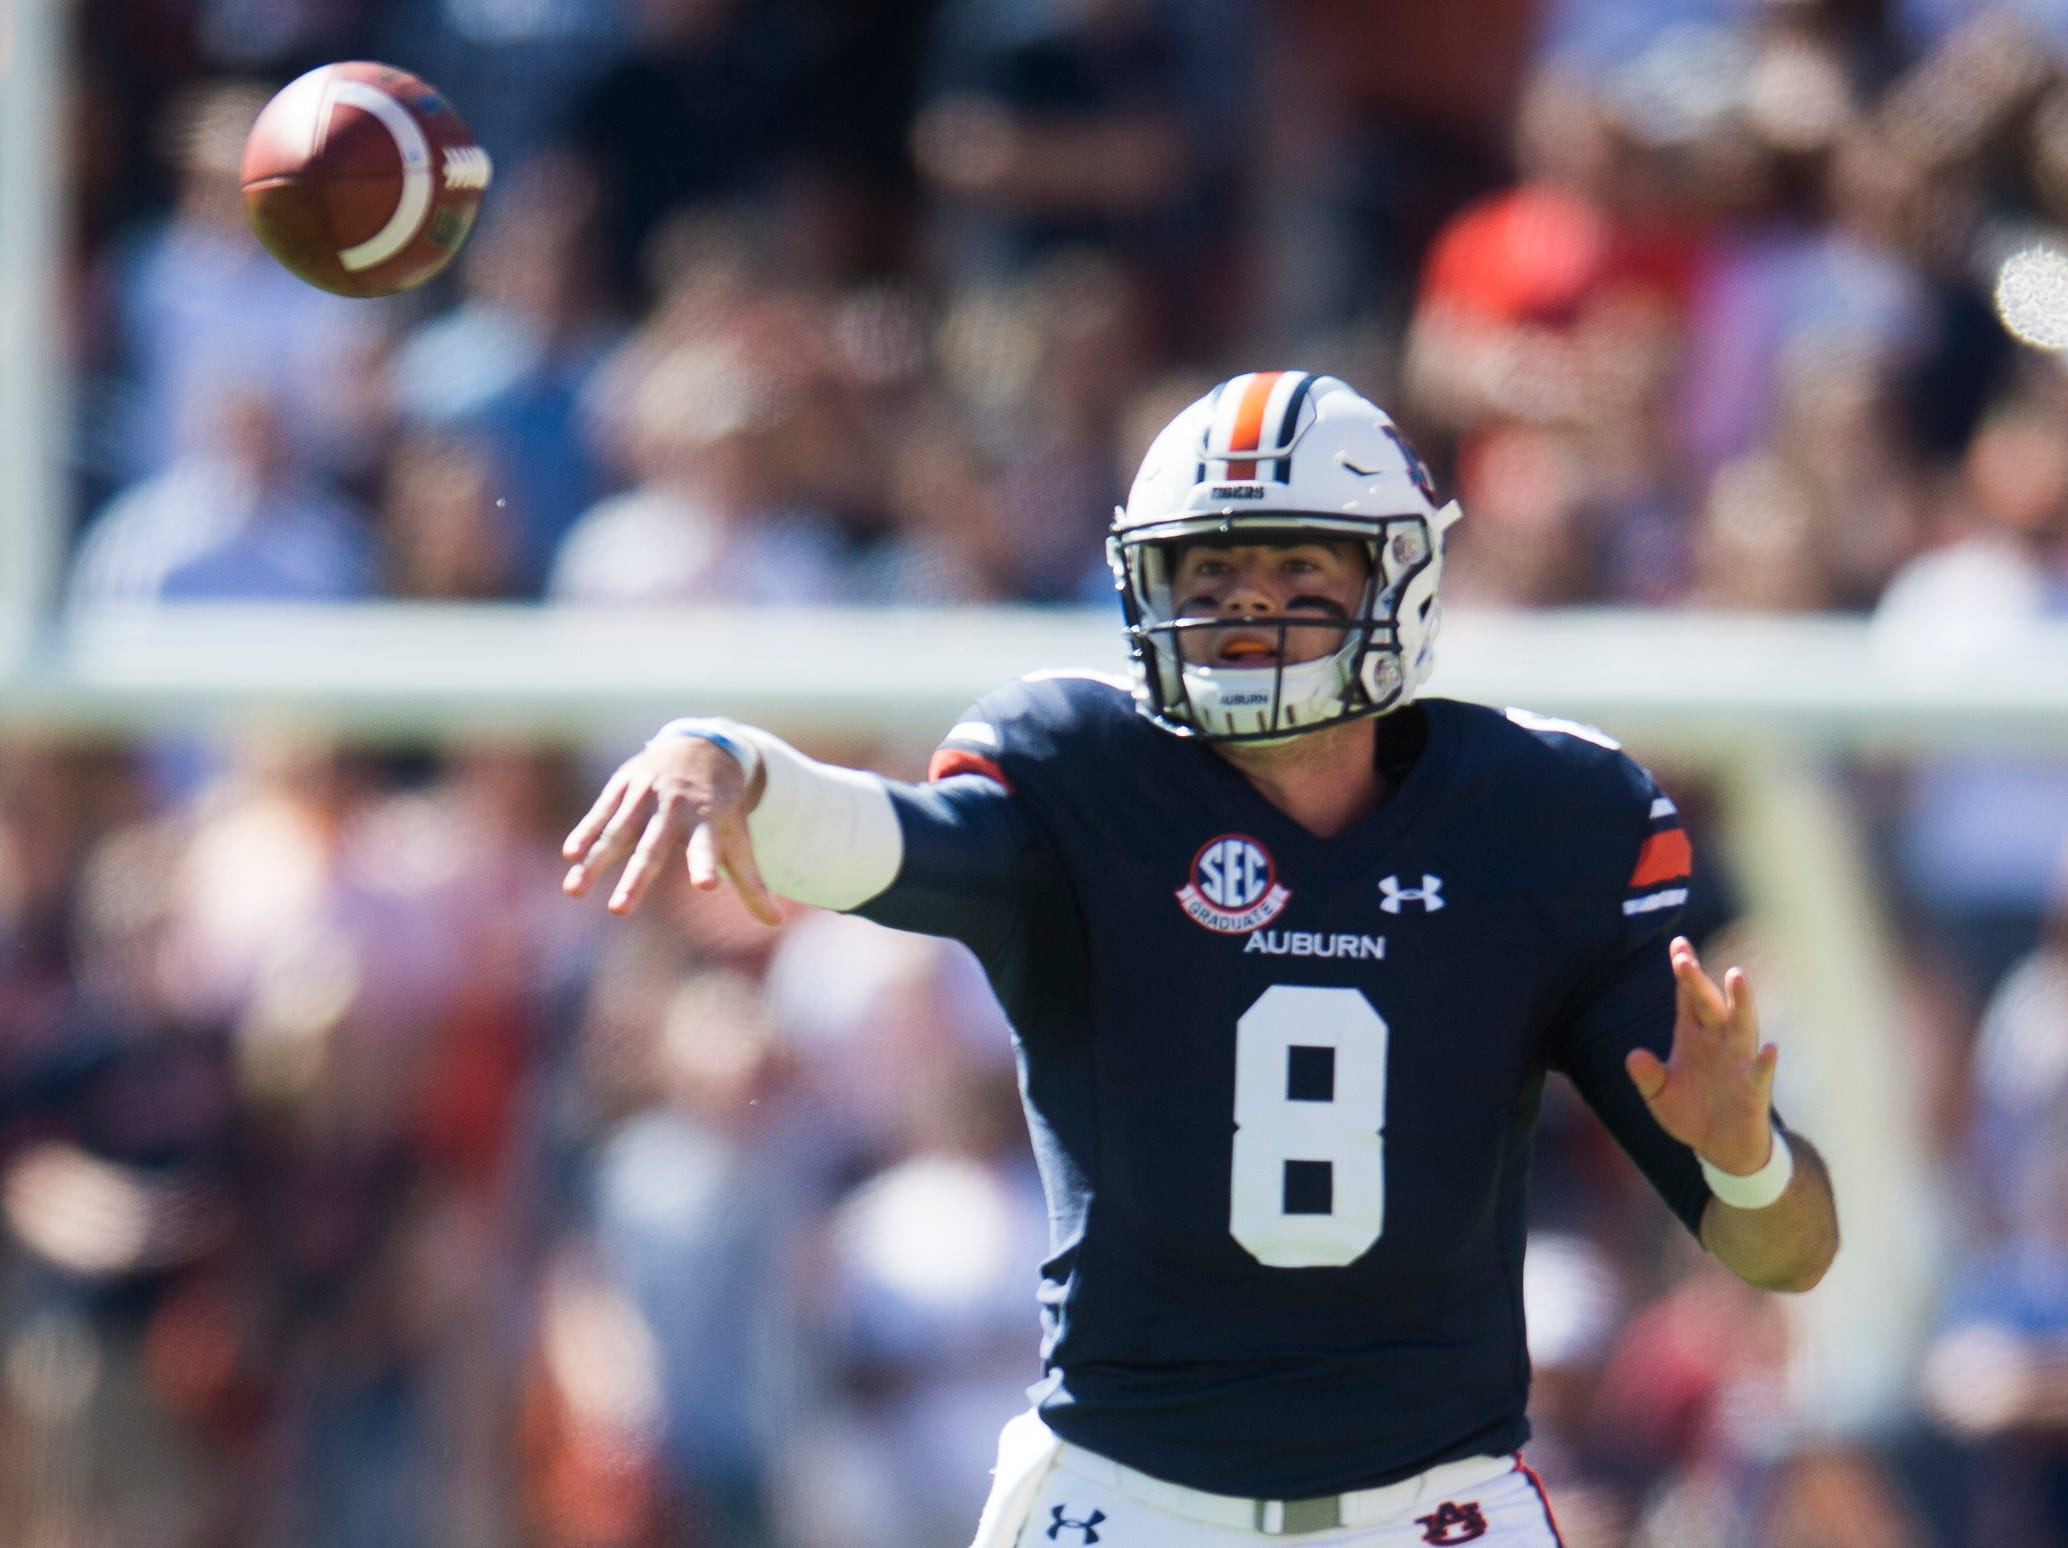 Auburn quarterback Jarrett Stidham (8) throws a pass during a game between Tennessee and Auburn at Jordan-Hare Stadium in Auburn, Alabama on Saturday, October 13, 2018.